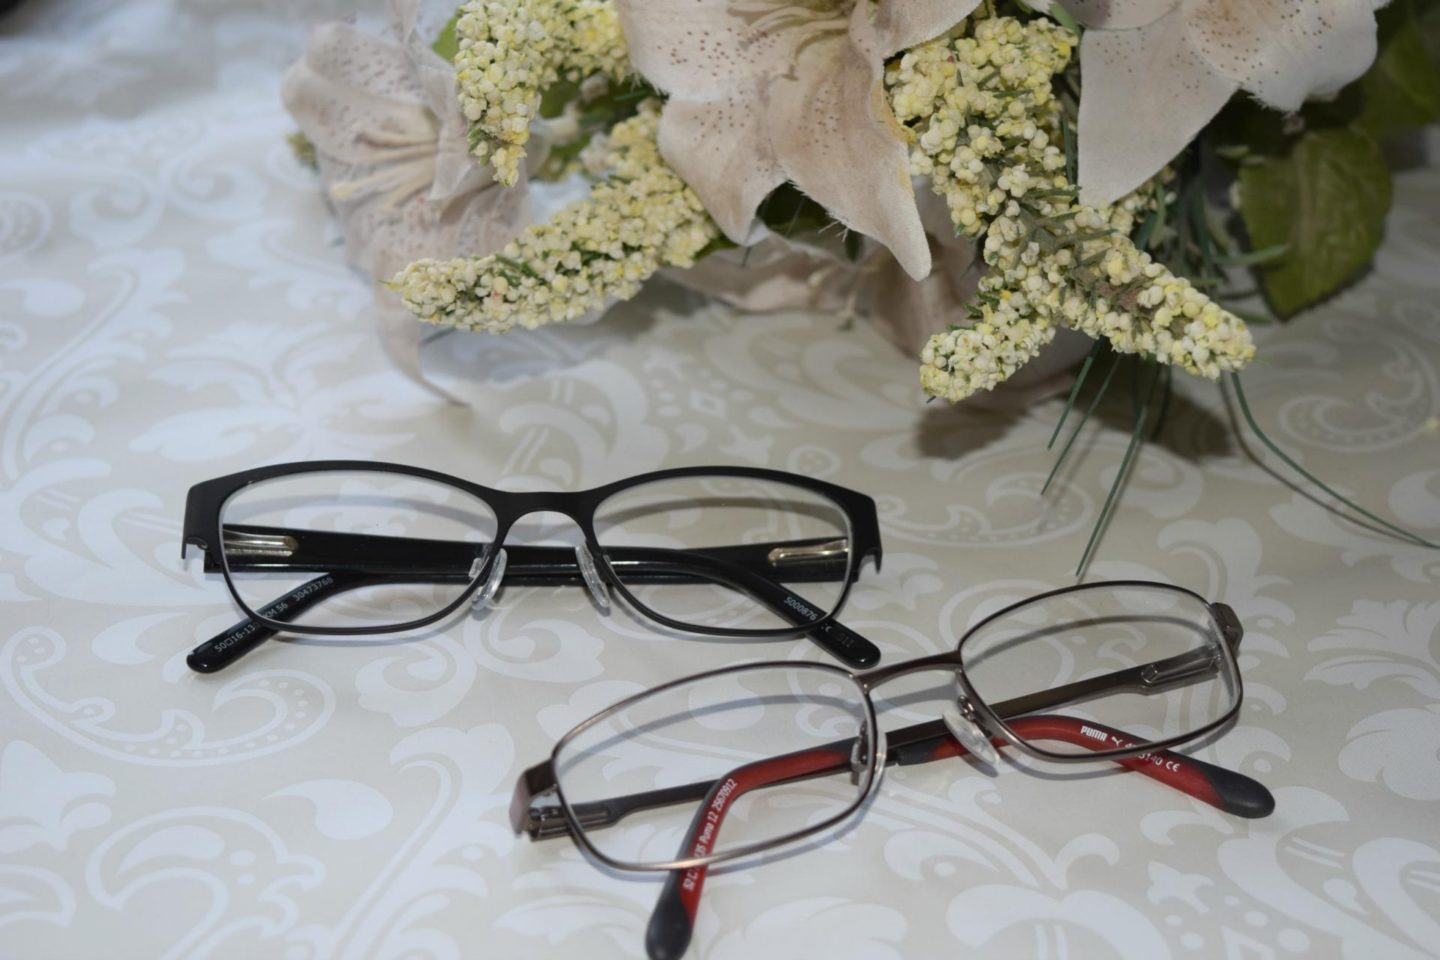 Review | Specsavers